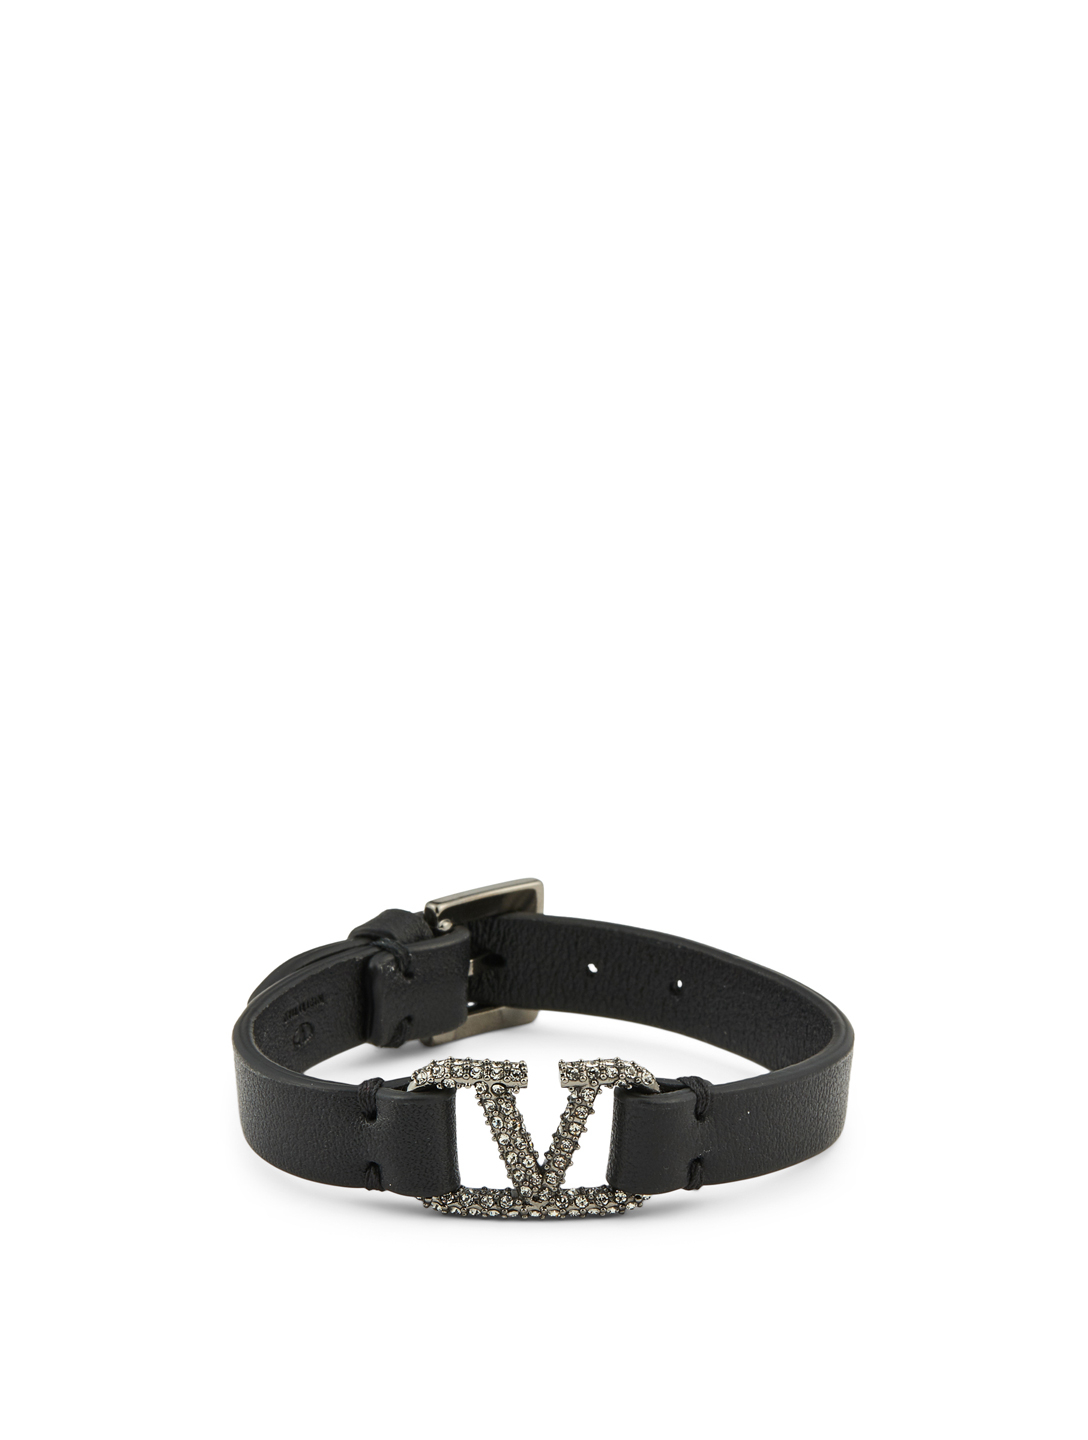 VALENTINO GARAVANI VLOGO Leather Bracelet With Crystals Women's Black